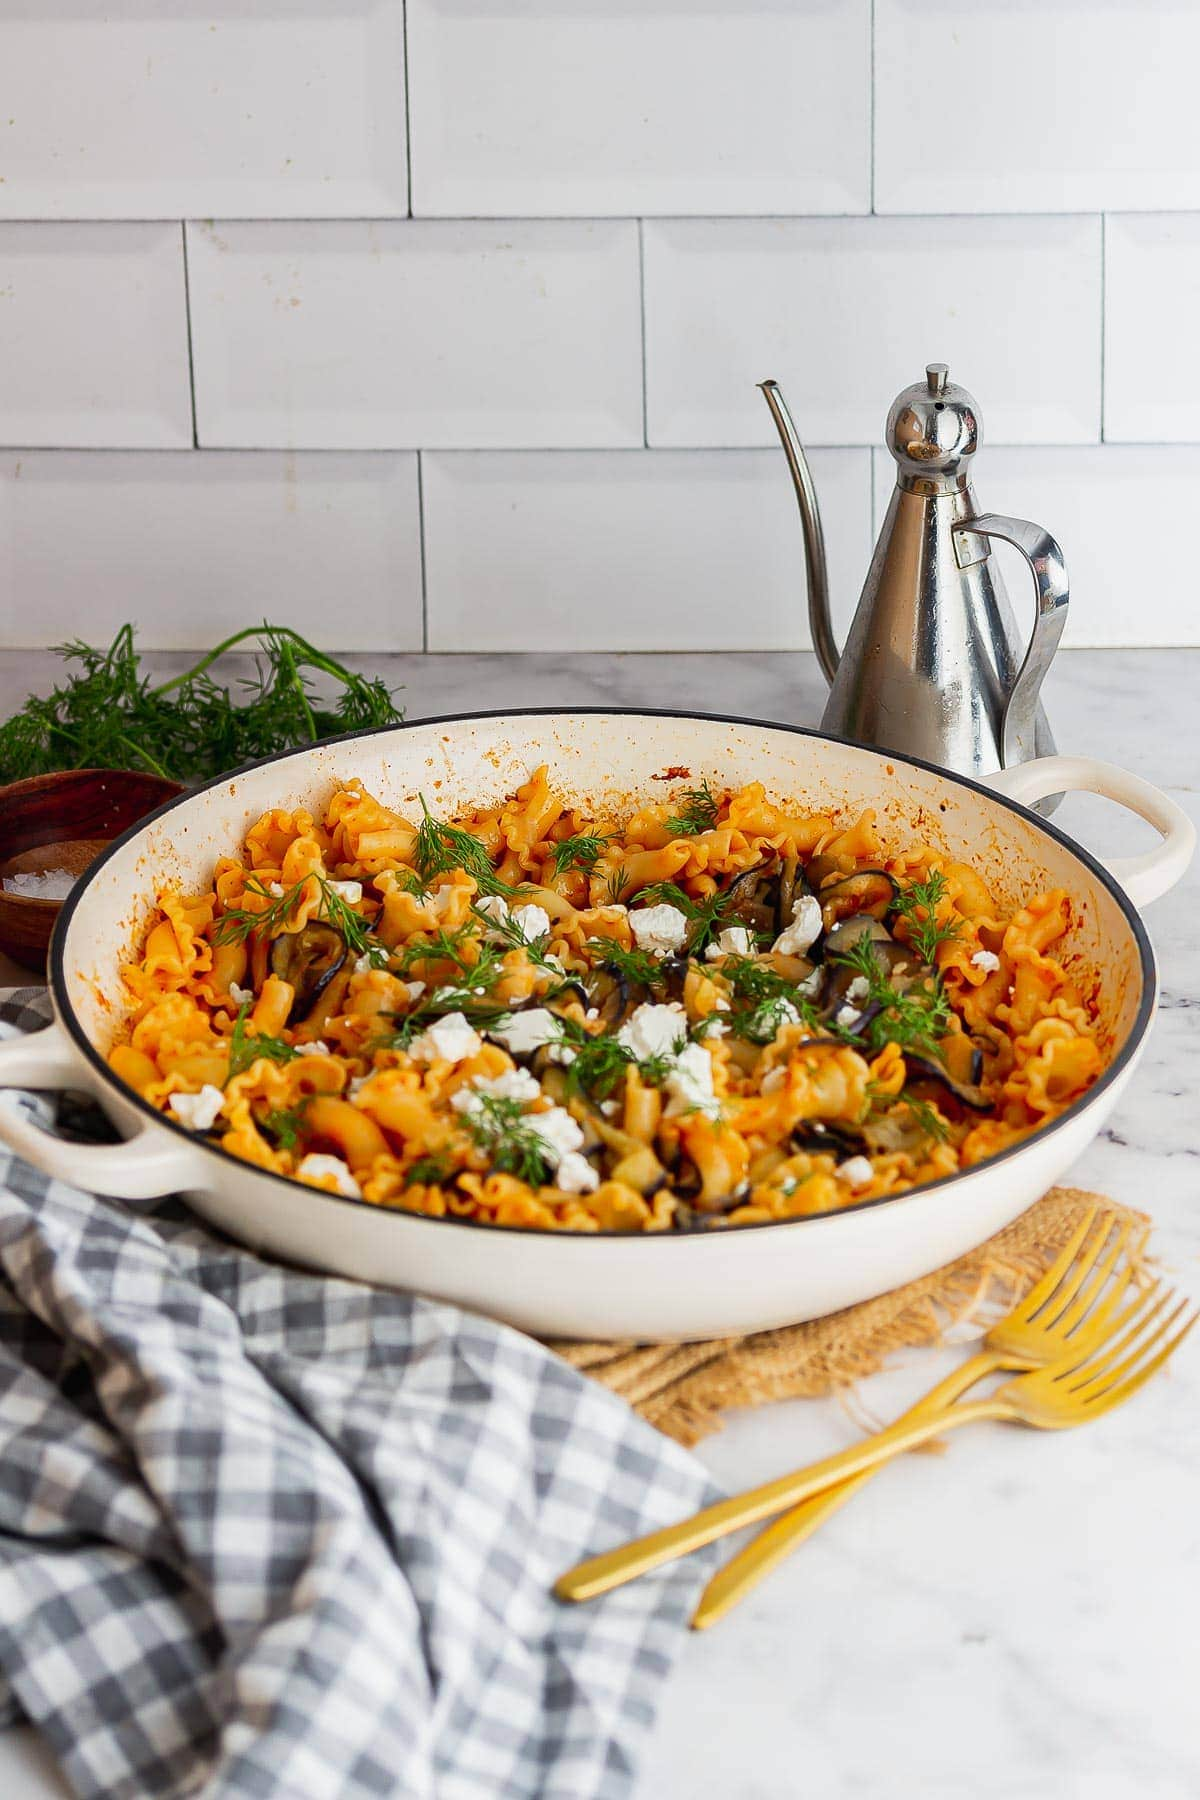 Skillet of pasta topped with feta with a checked cloth in front of a white tile background